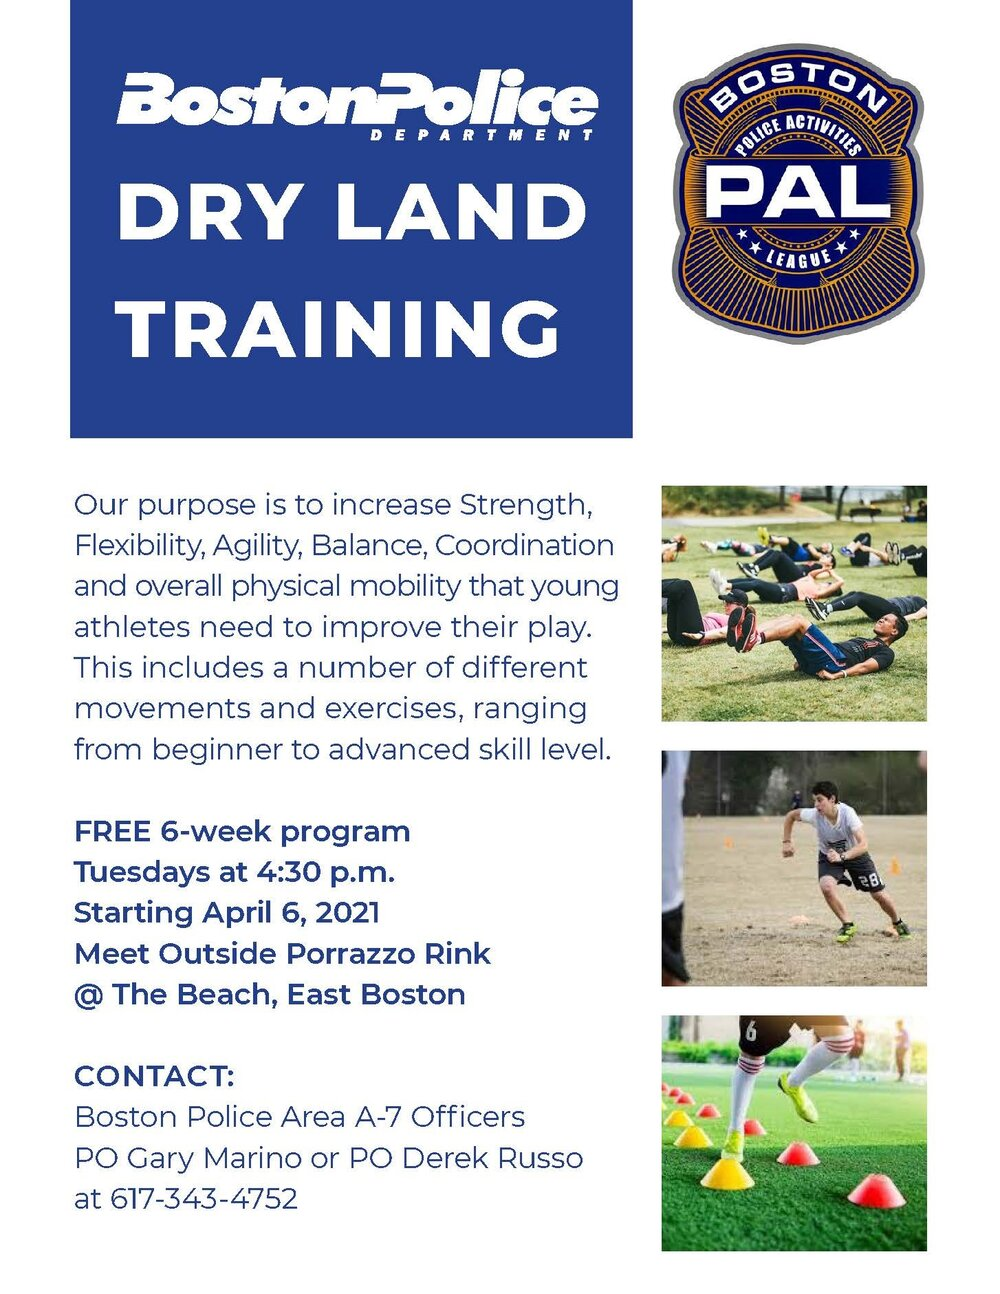 District A-7 Community Service Office to Begin Six Week Dry Land Training Program for All Athletic Skill Levels in East Boston